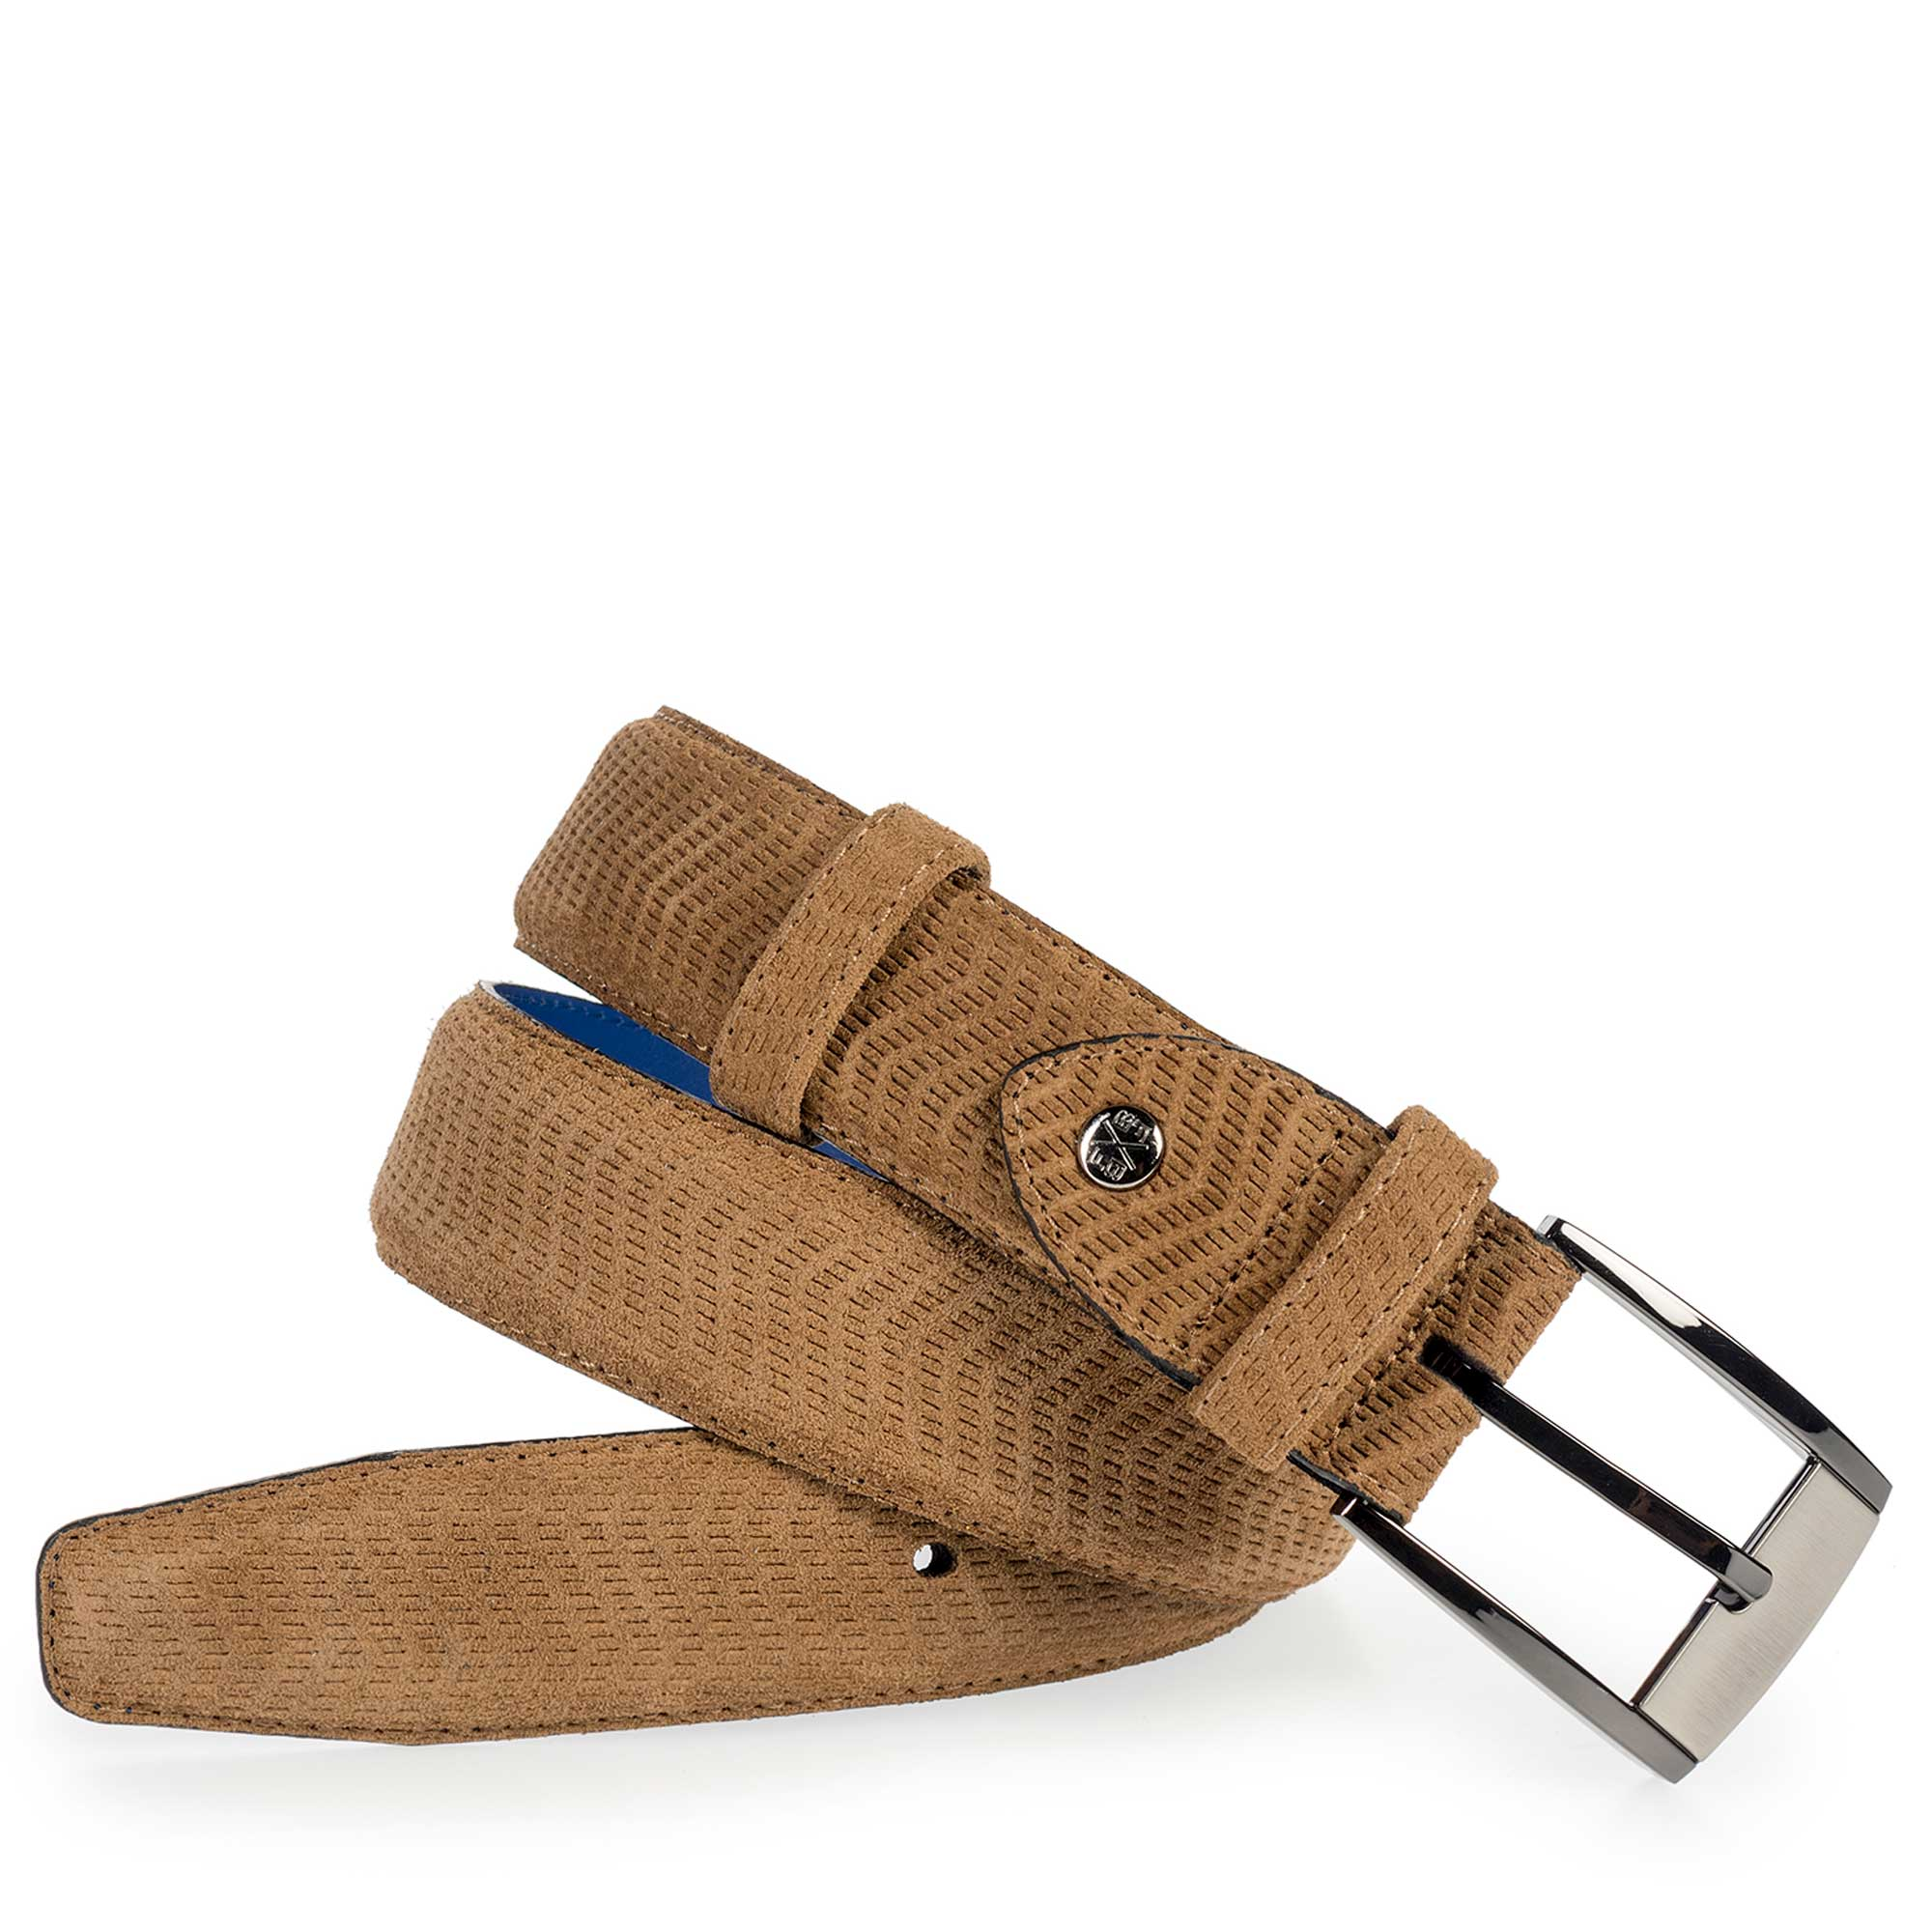 75180/10 - Cognac-coloured suede leather belt with pattern